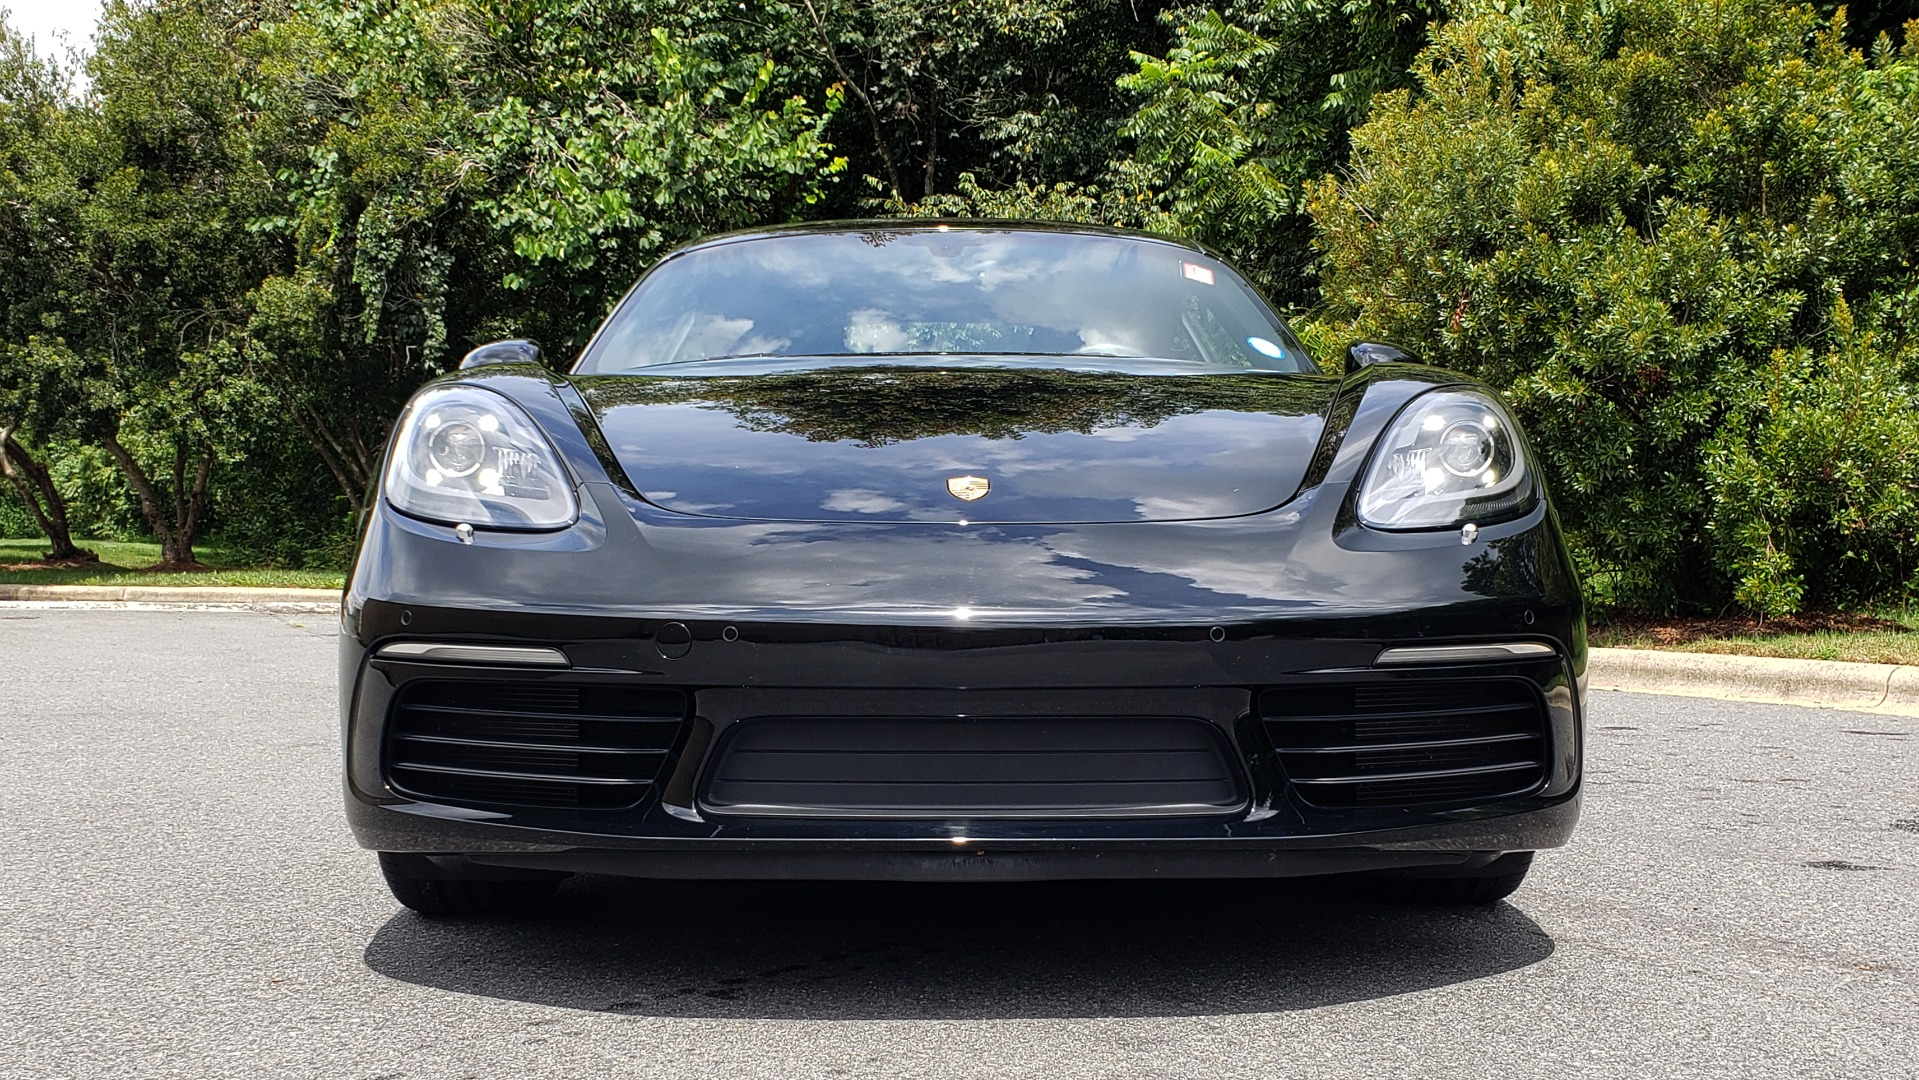 Used 2018 Porsche 718 CAYMAN S / PREM PKG PLUS / PDK / NAV / BOSE / CHRONO / SPORT EXHAUST for sale Sold at Formula Imports in Charlotte NC 28227 17